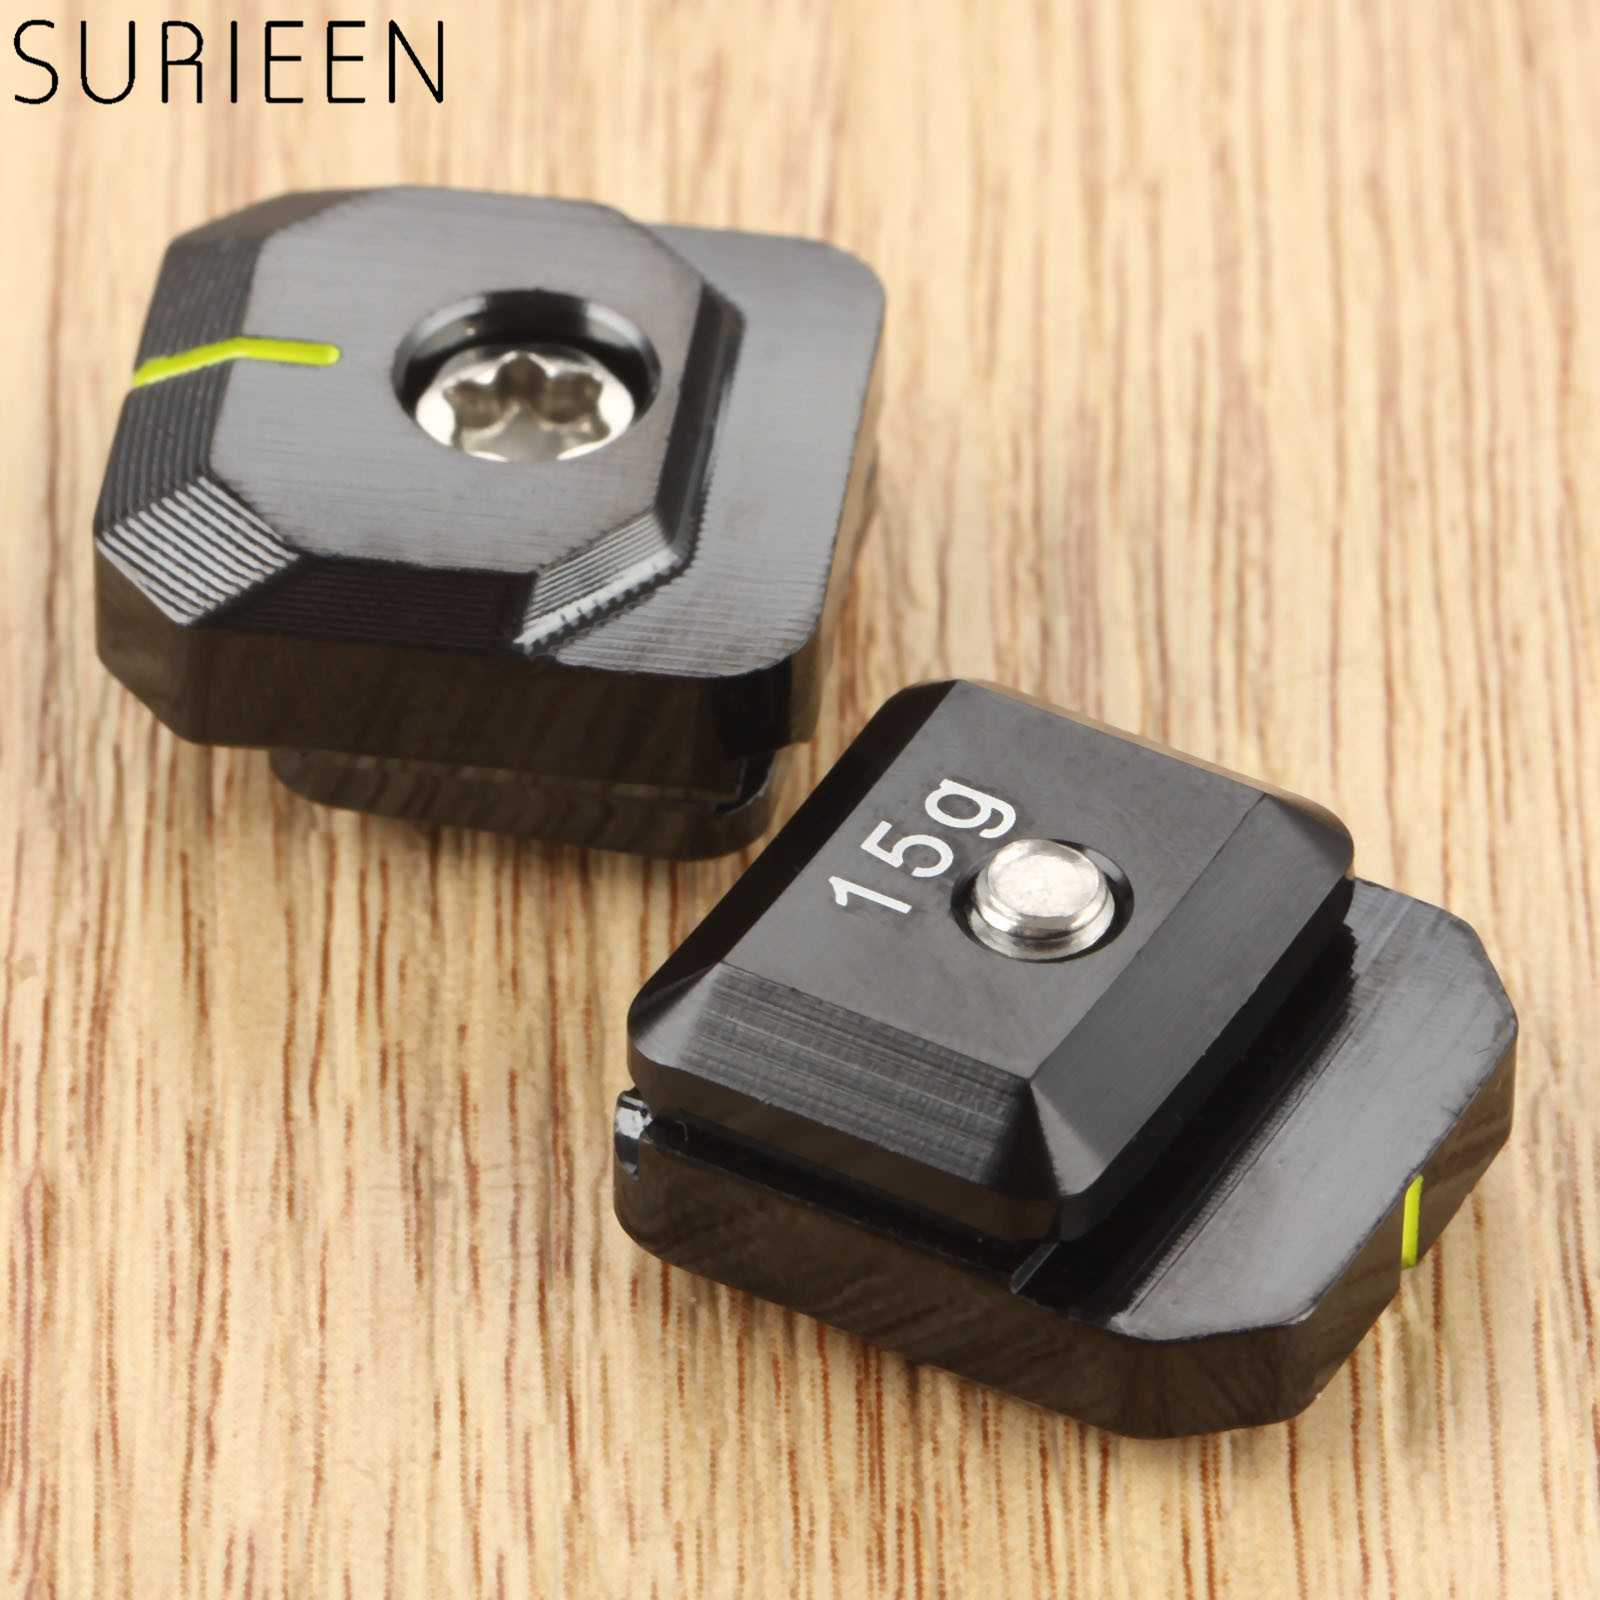 SURIEEN 1Pc Golf Weight With Screw